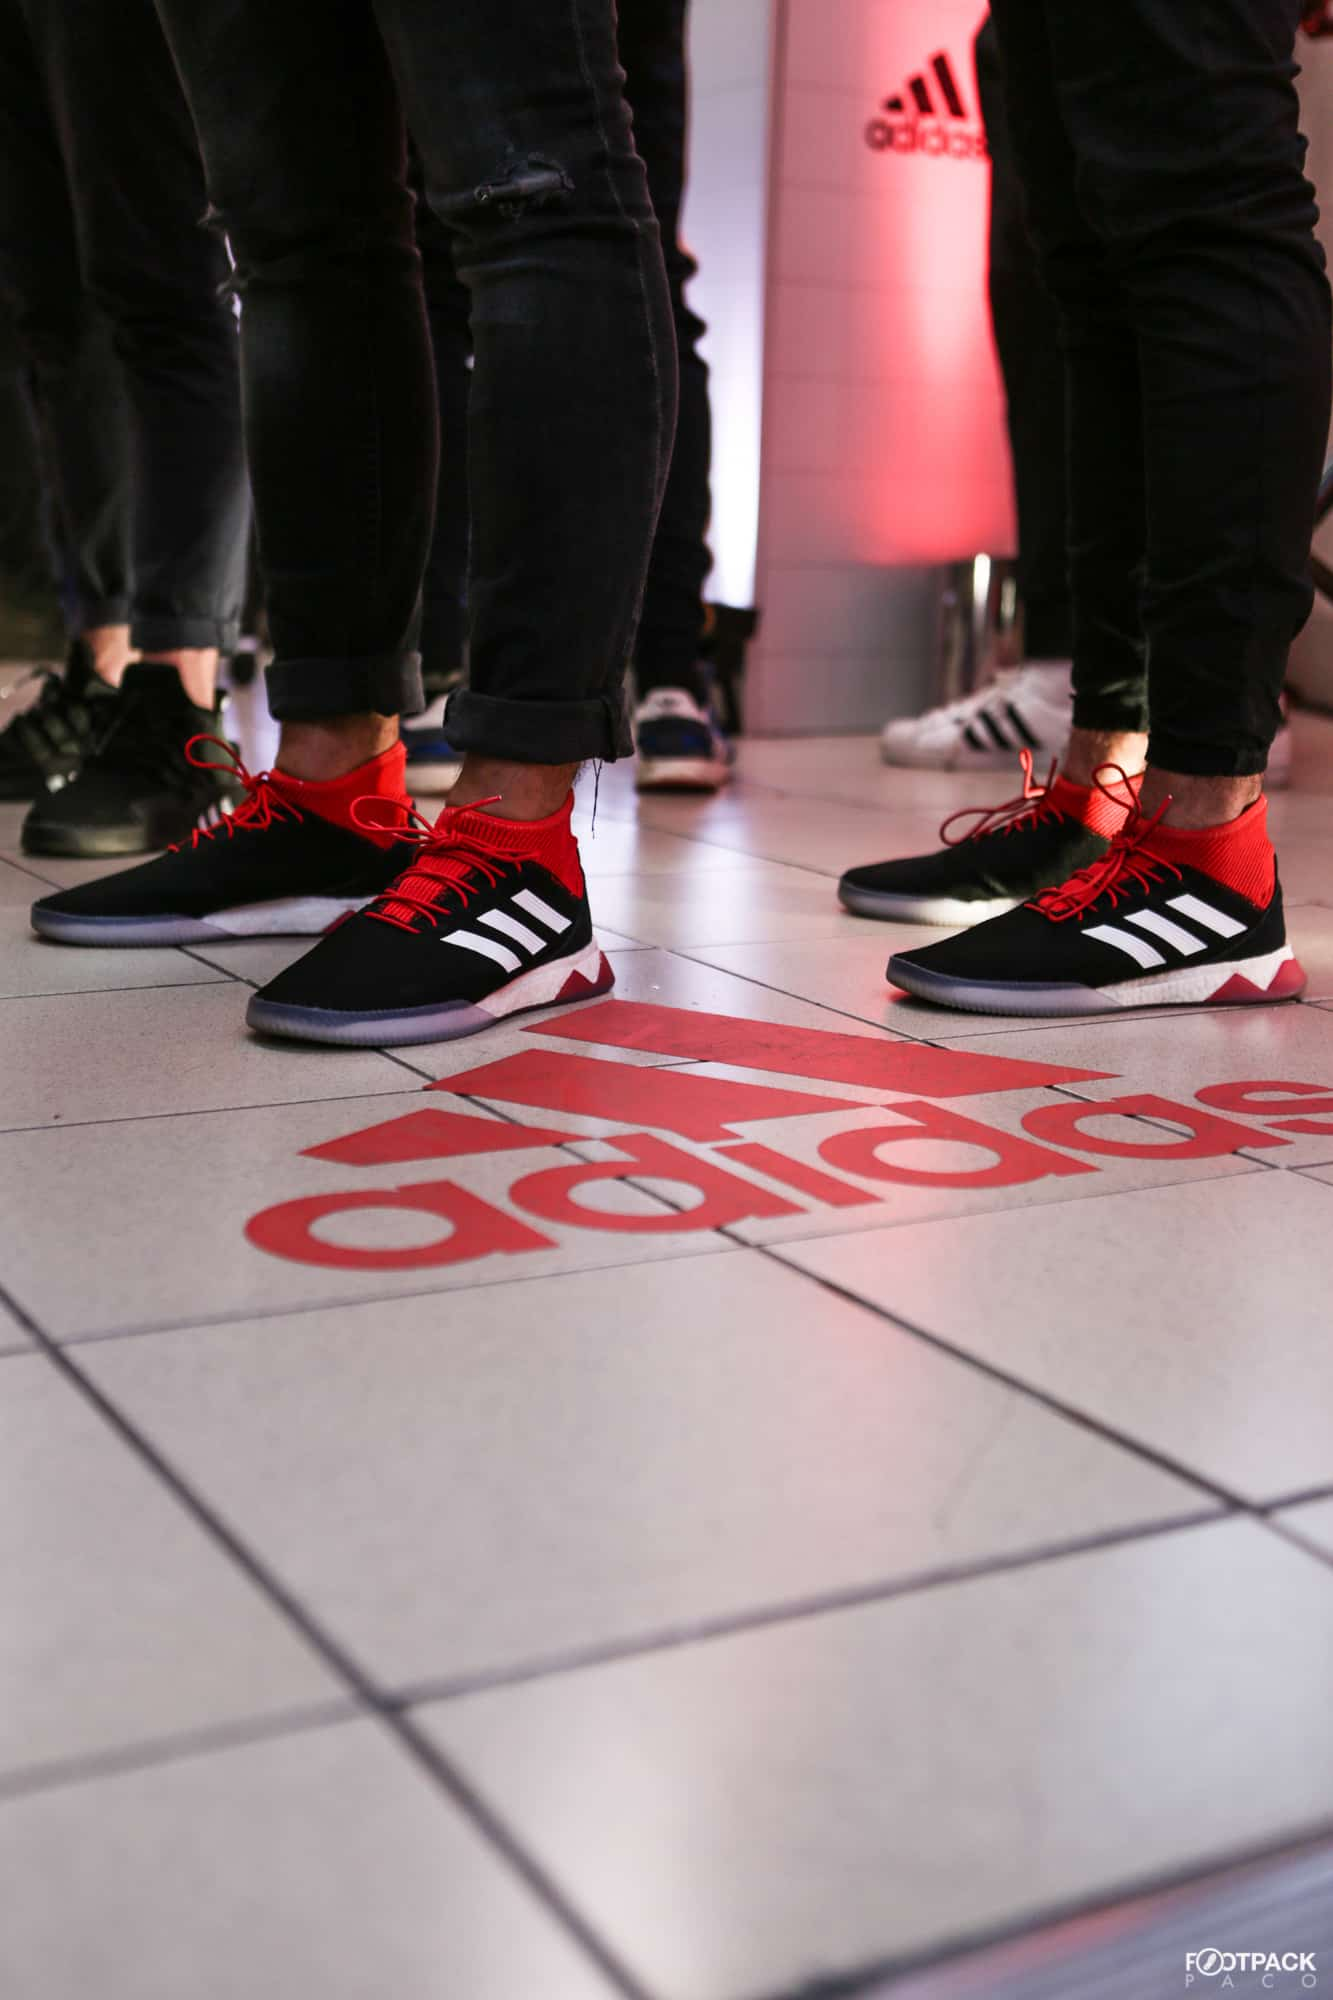 evenement--adidas-glitch-londres-footpack-12